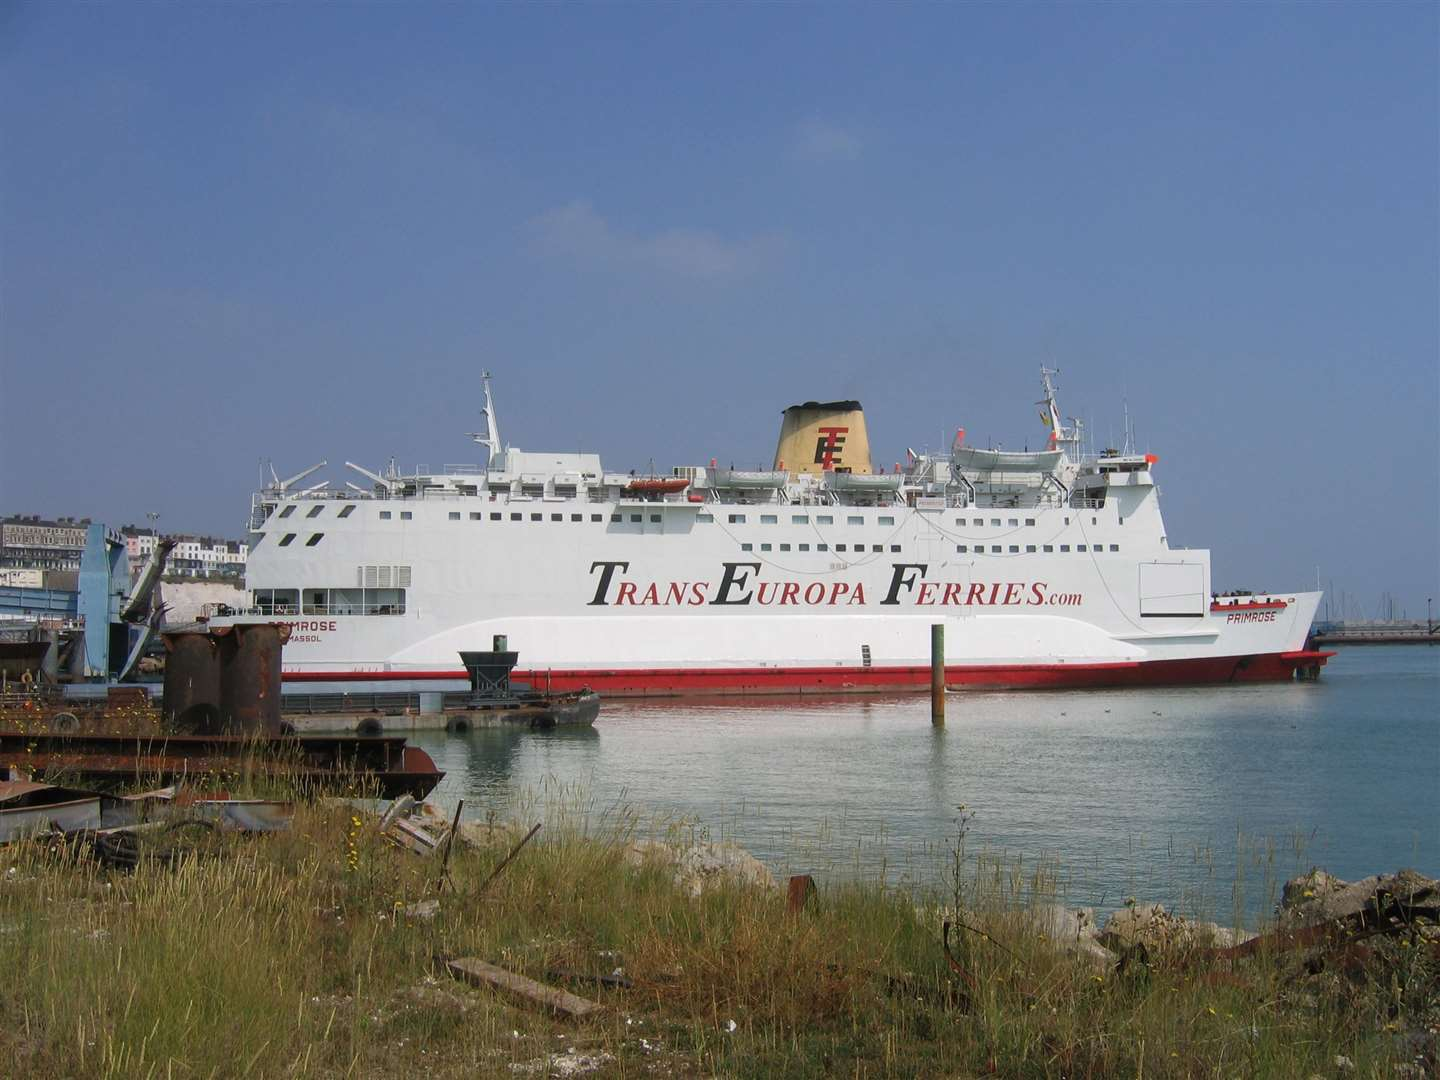 TransEuropa ferries collapsed in 2013